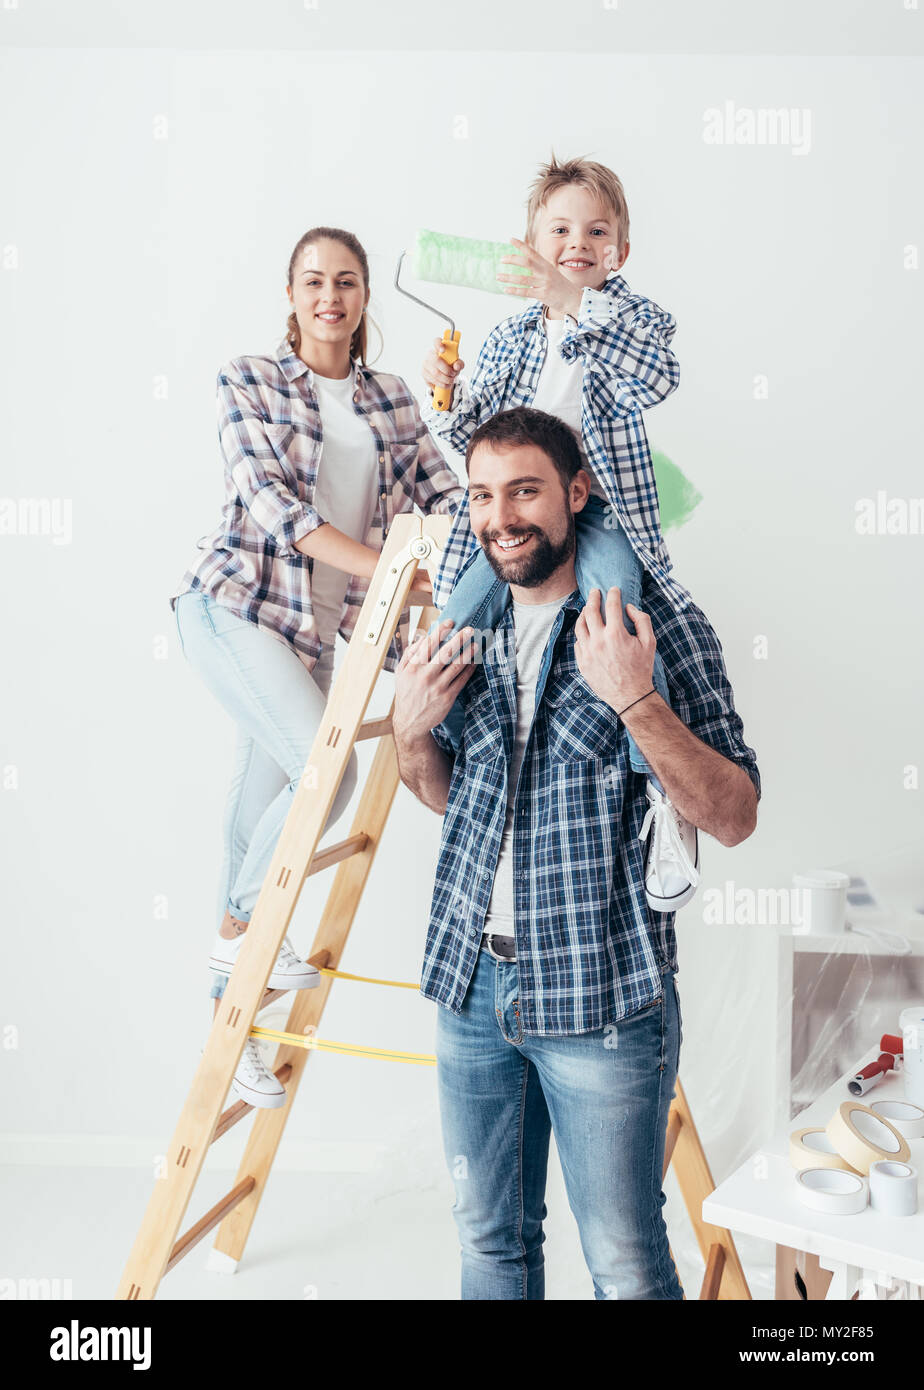 Happy family renovating their new home, they are posing together with a ladder and a paint roller, the father is piggybacking his son - Stock Image